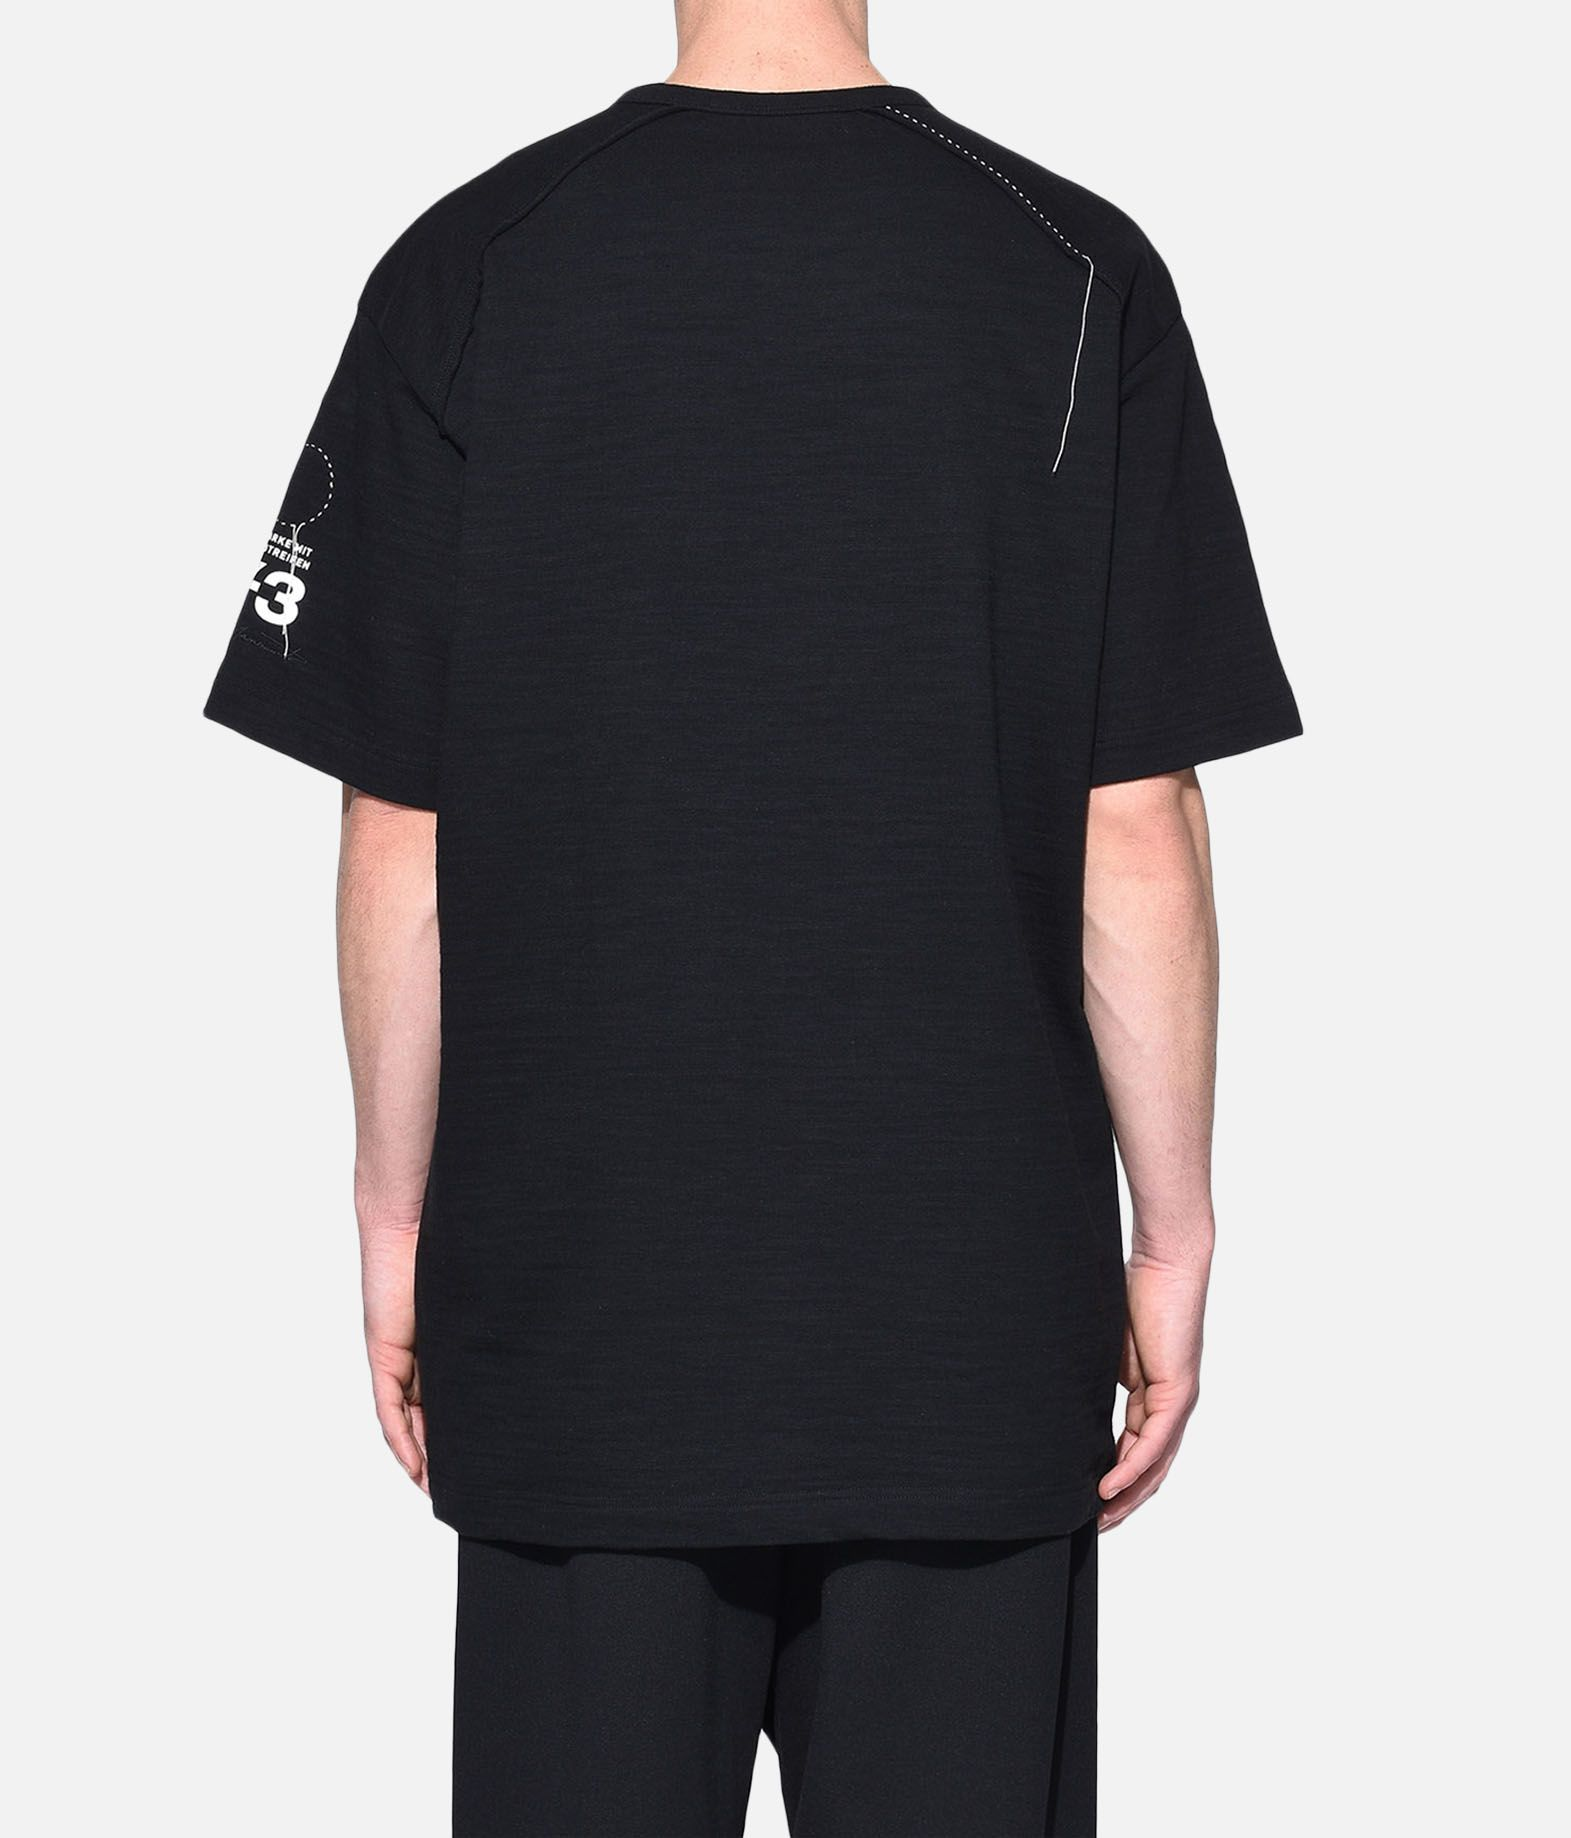 Y-3 Y-3 Sashiko Tee Short sleeve t-shirt Man d